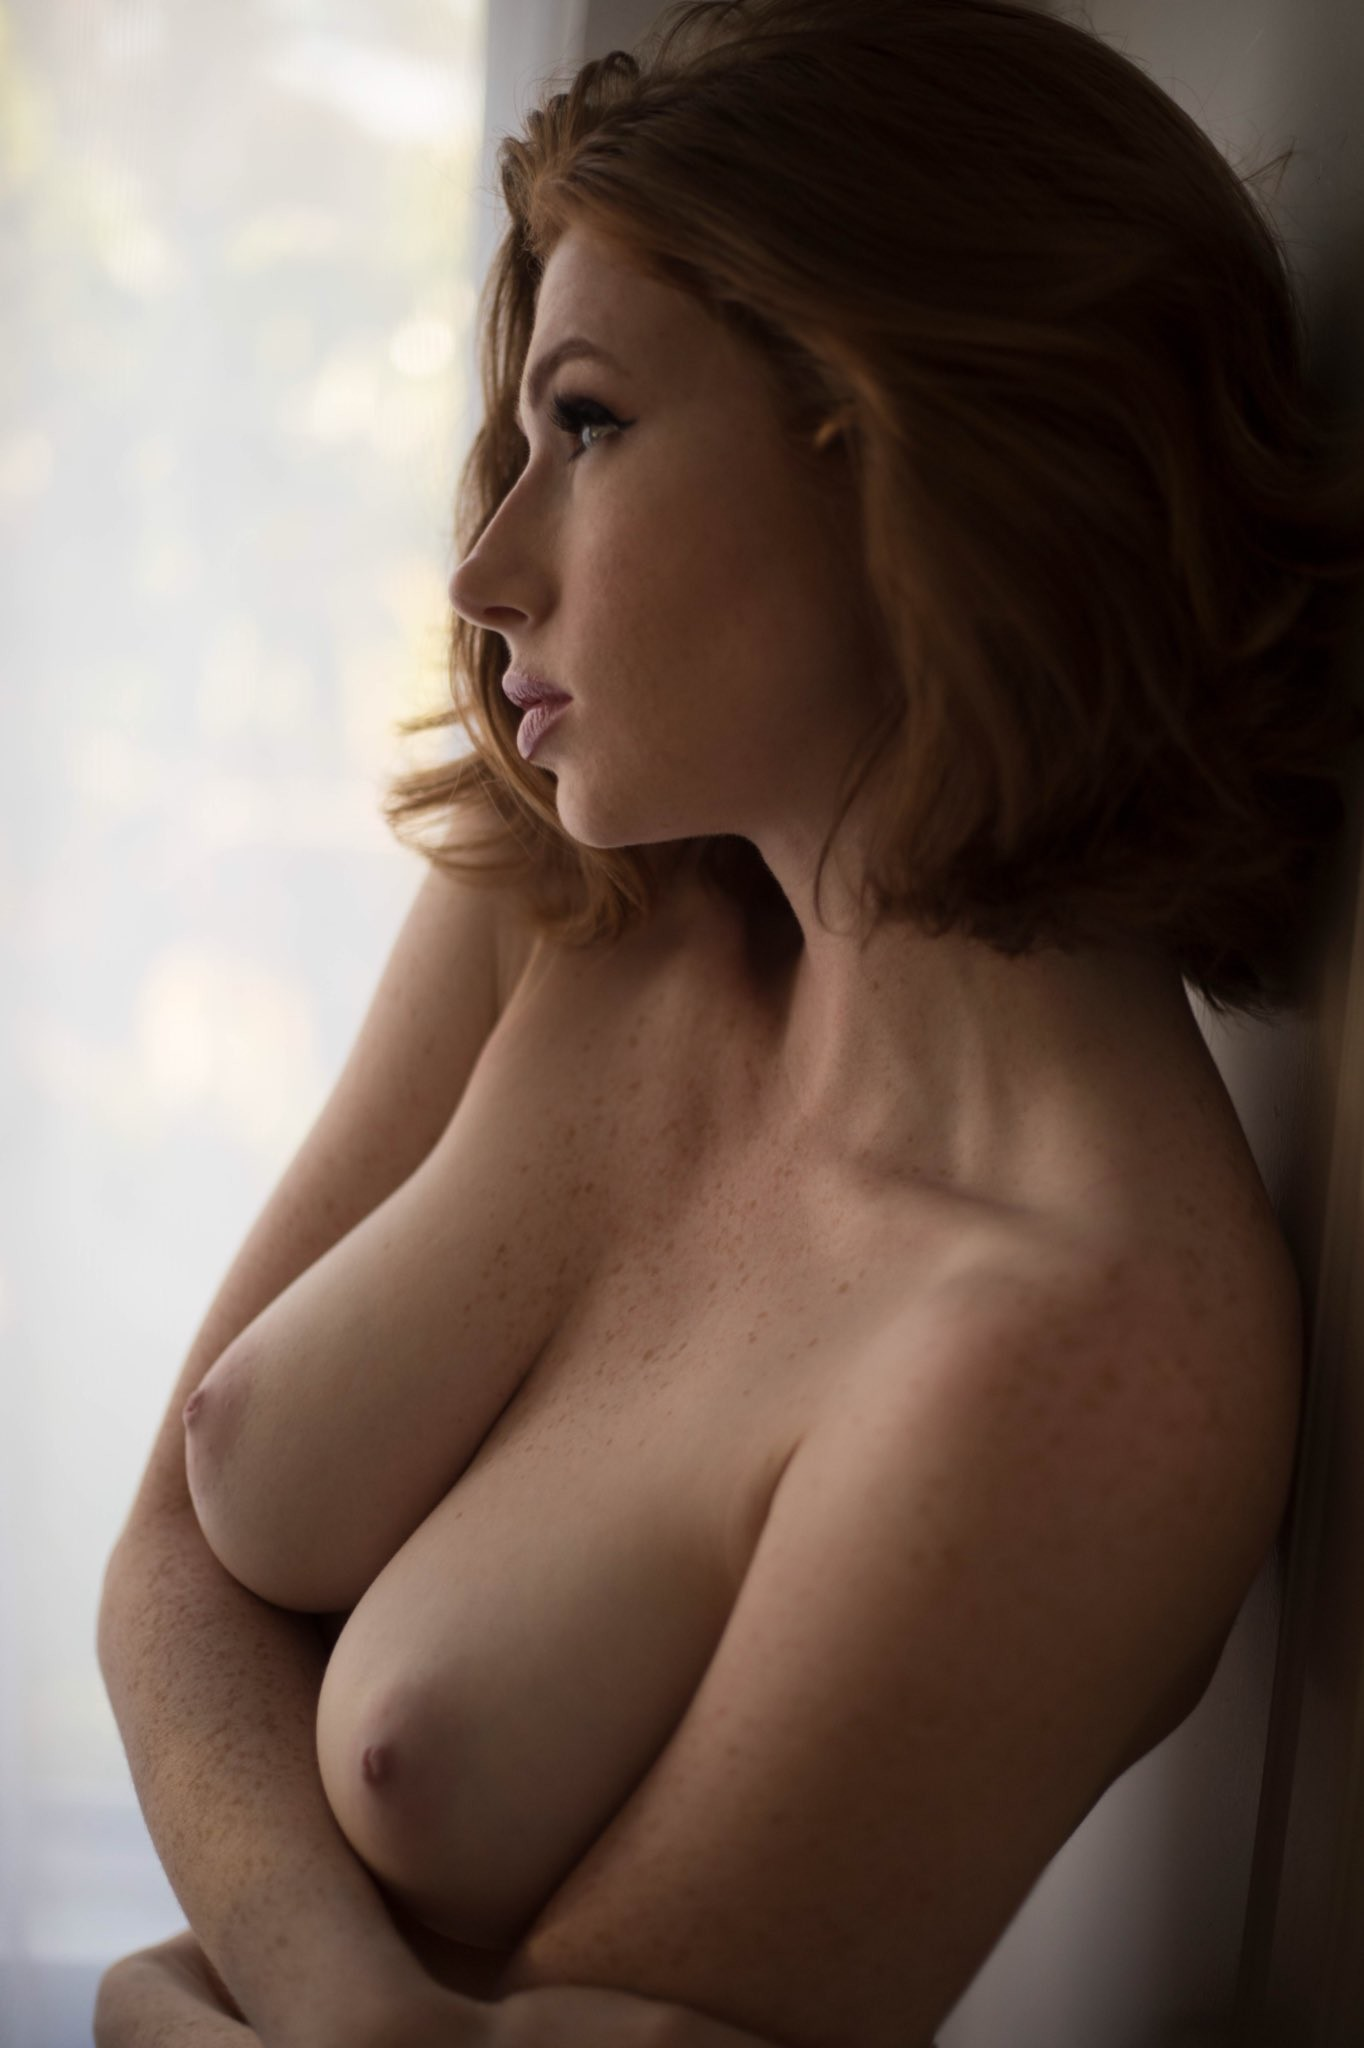 Abigale Mandler Nude Pictures Leaked, Huge Boobs